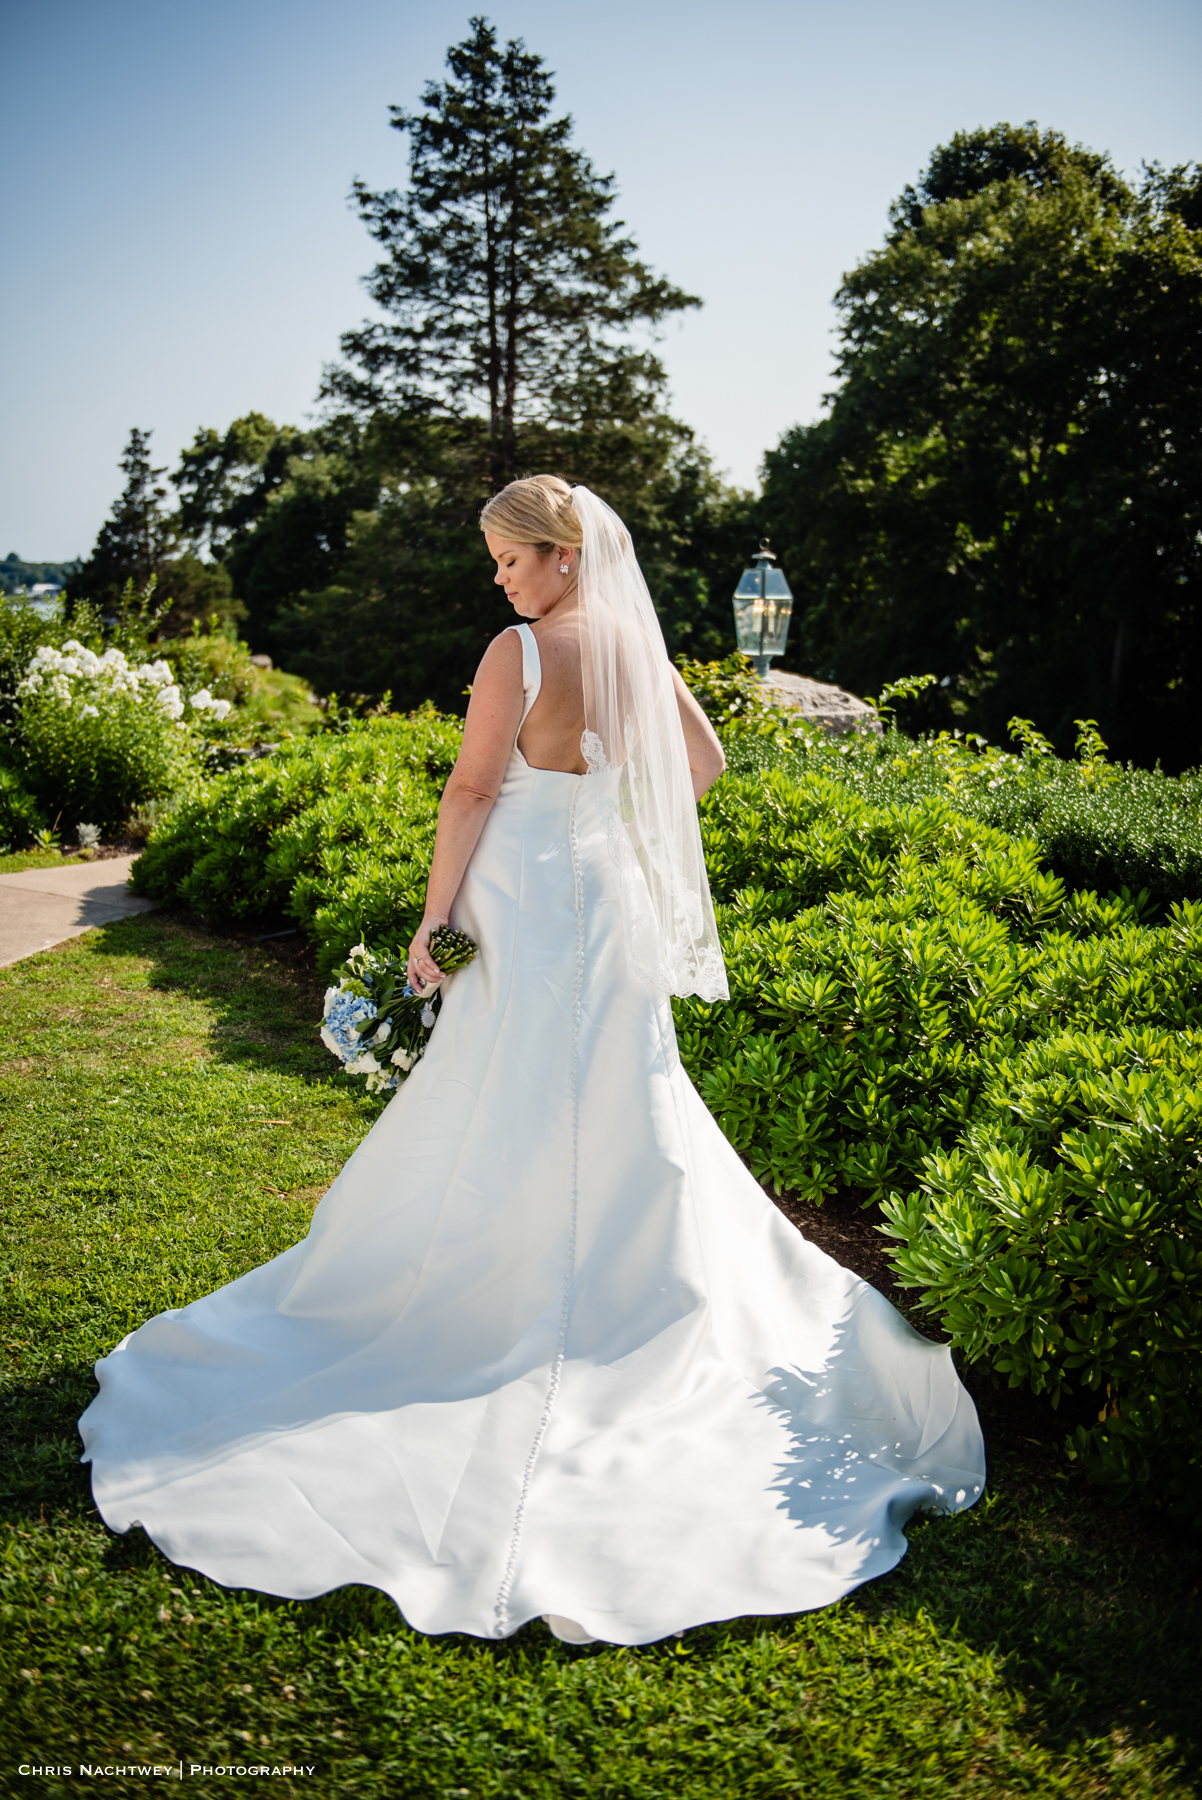 photos-wedding-haley-mansion-mystic-ct-chris-nachtwey-photography-2019-18.jpg